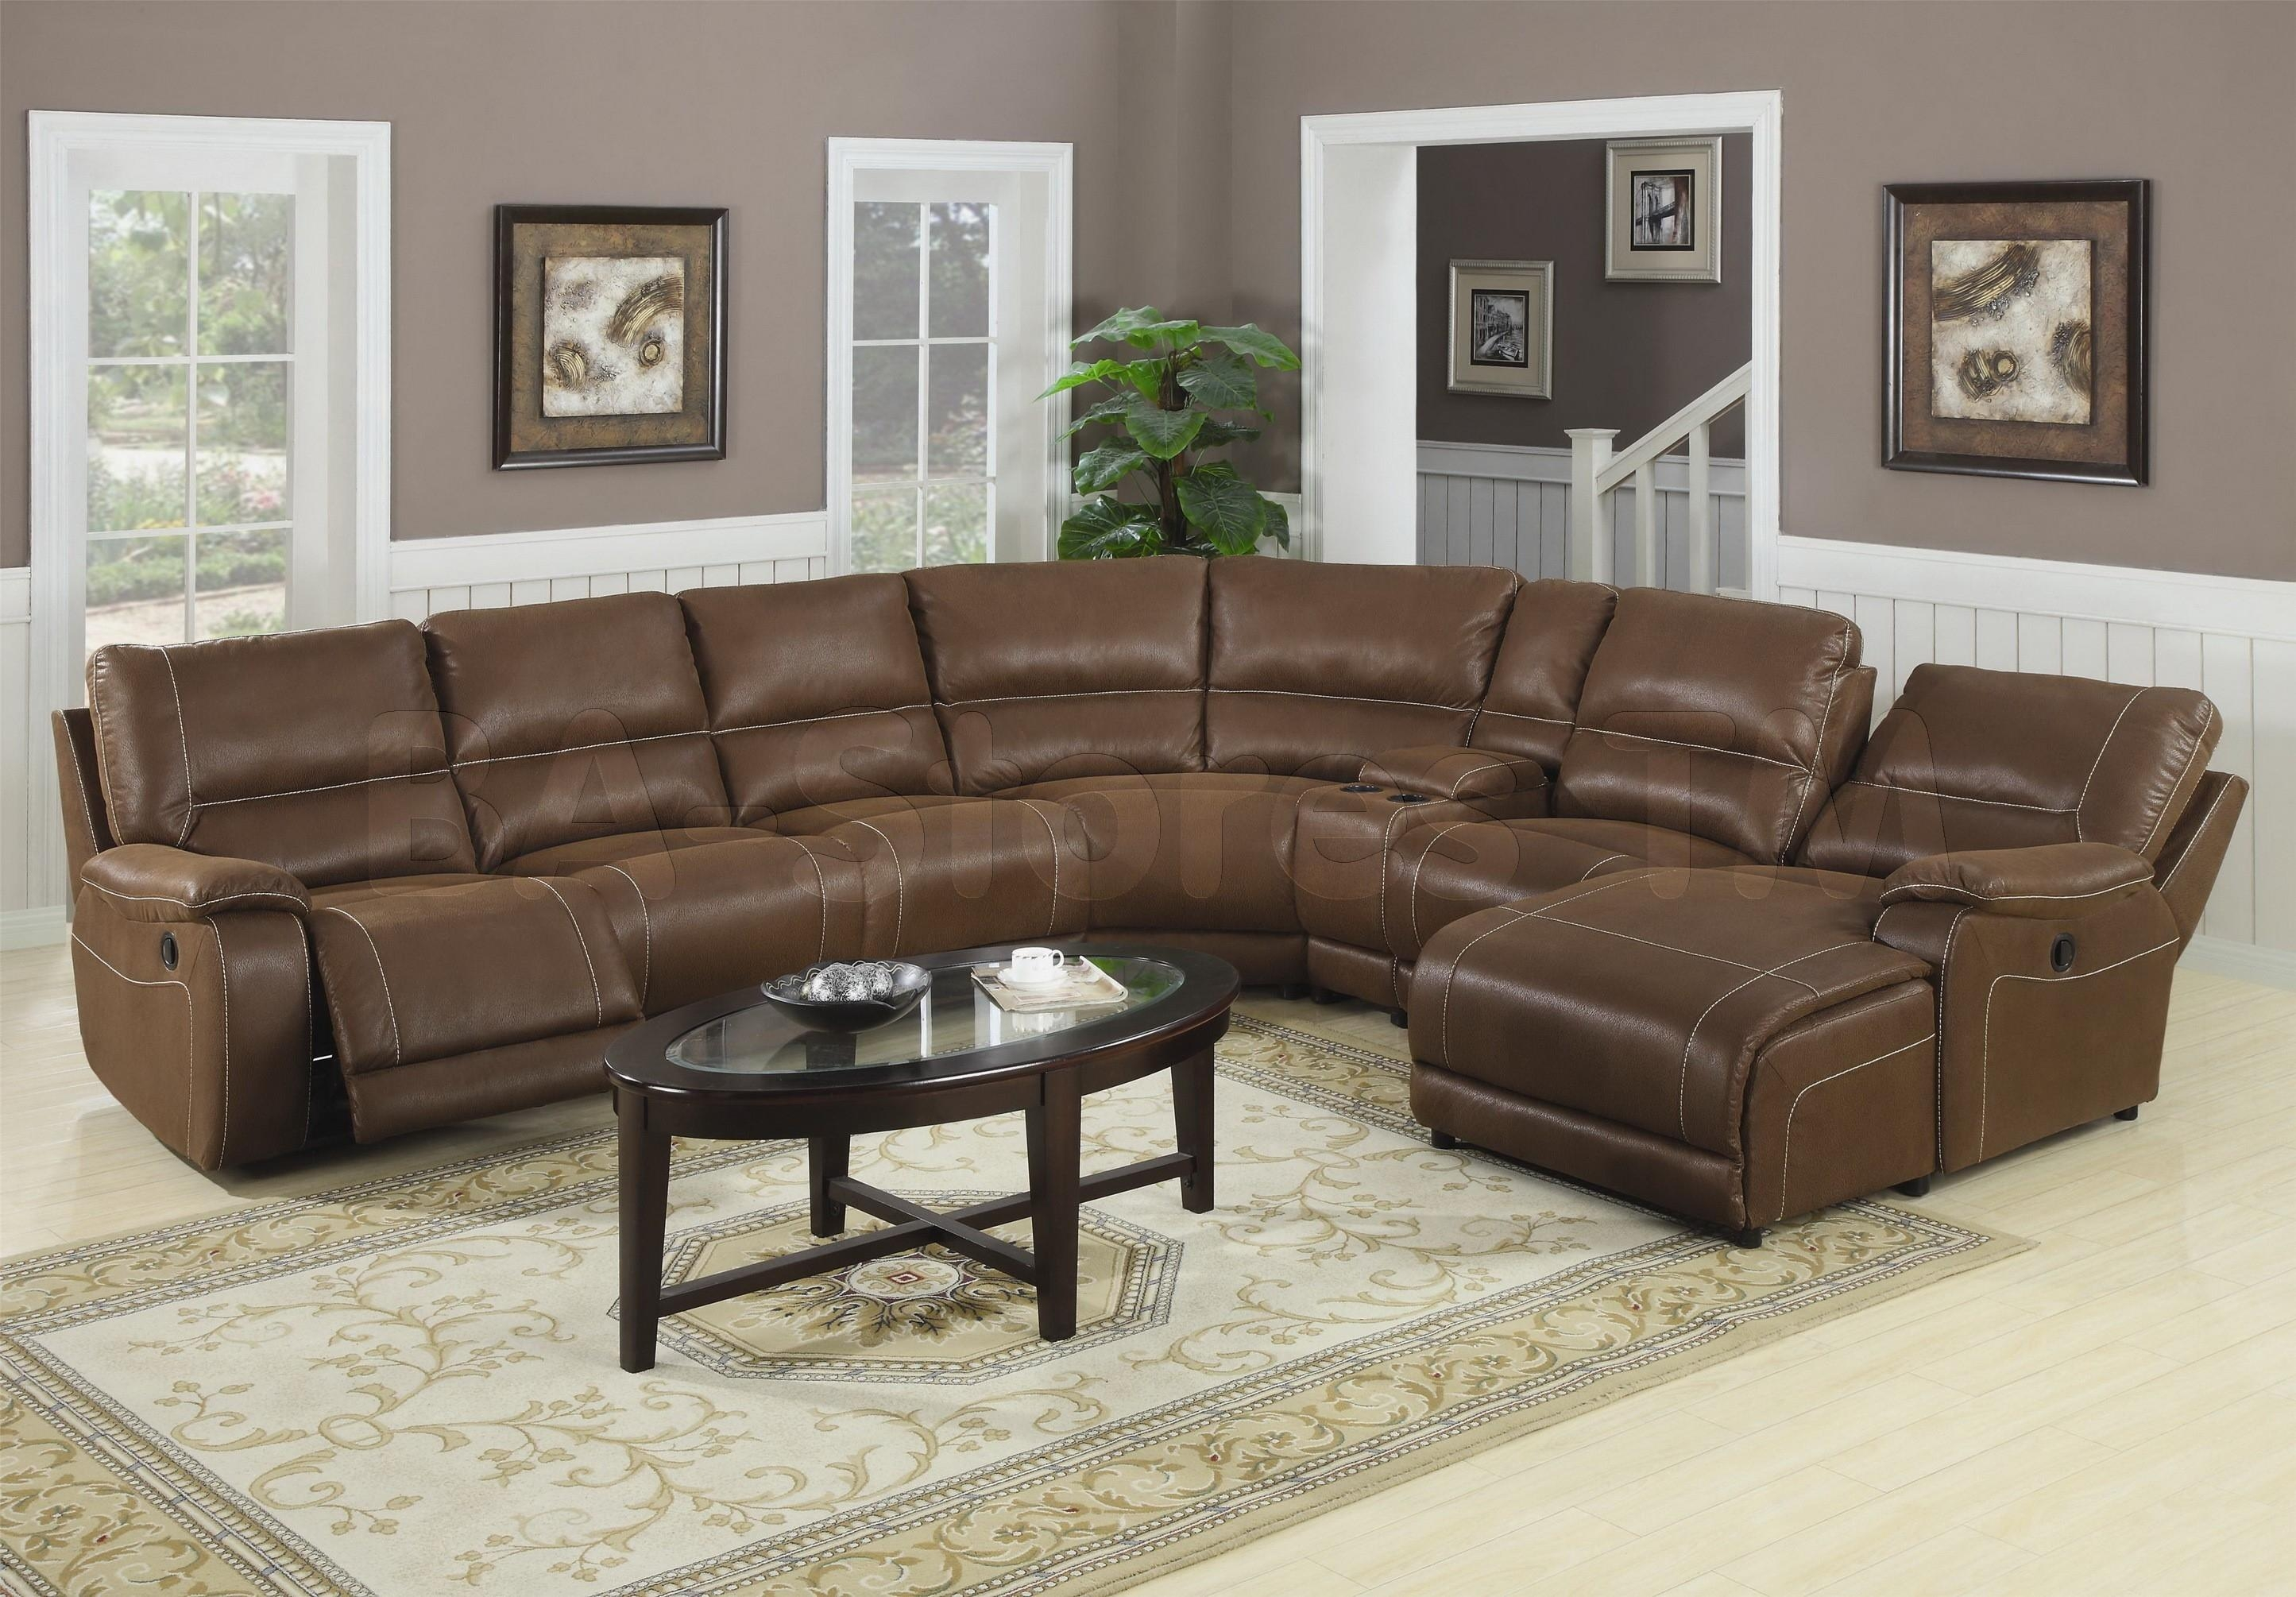 Luxury Sectional Sofas Okc 76 On Slumberland Sofa Sleepers With In Slumberland Sofas (View 17 of 20)